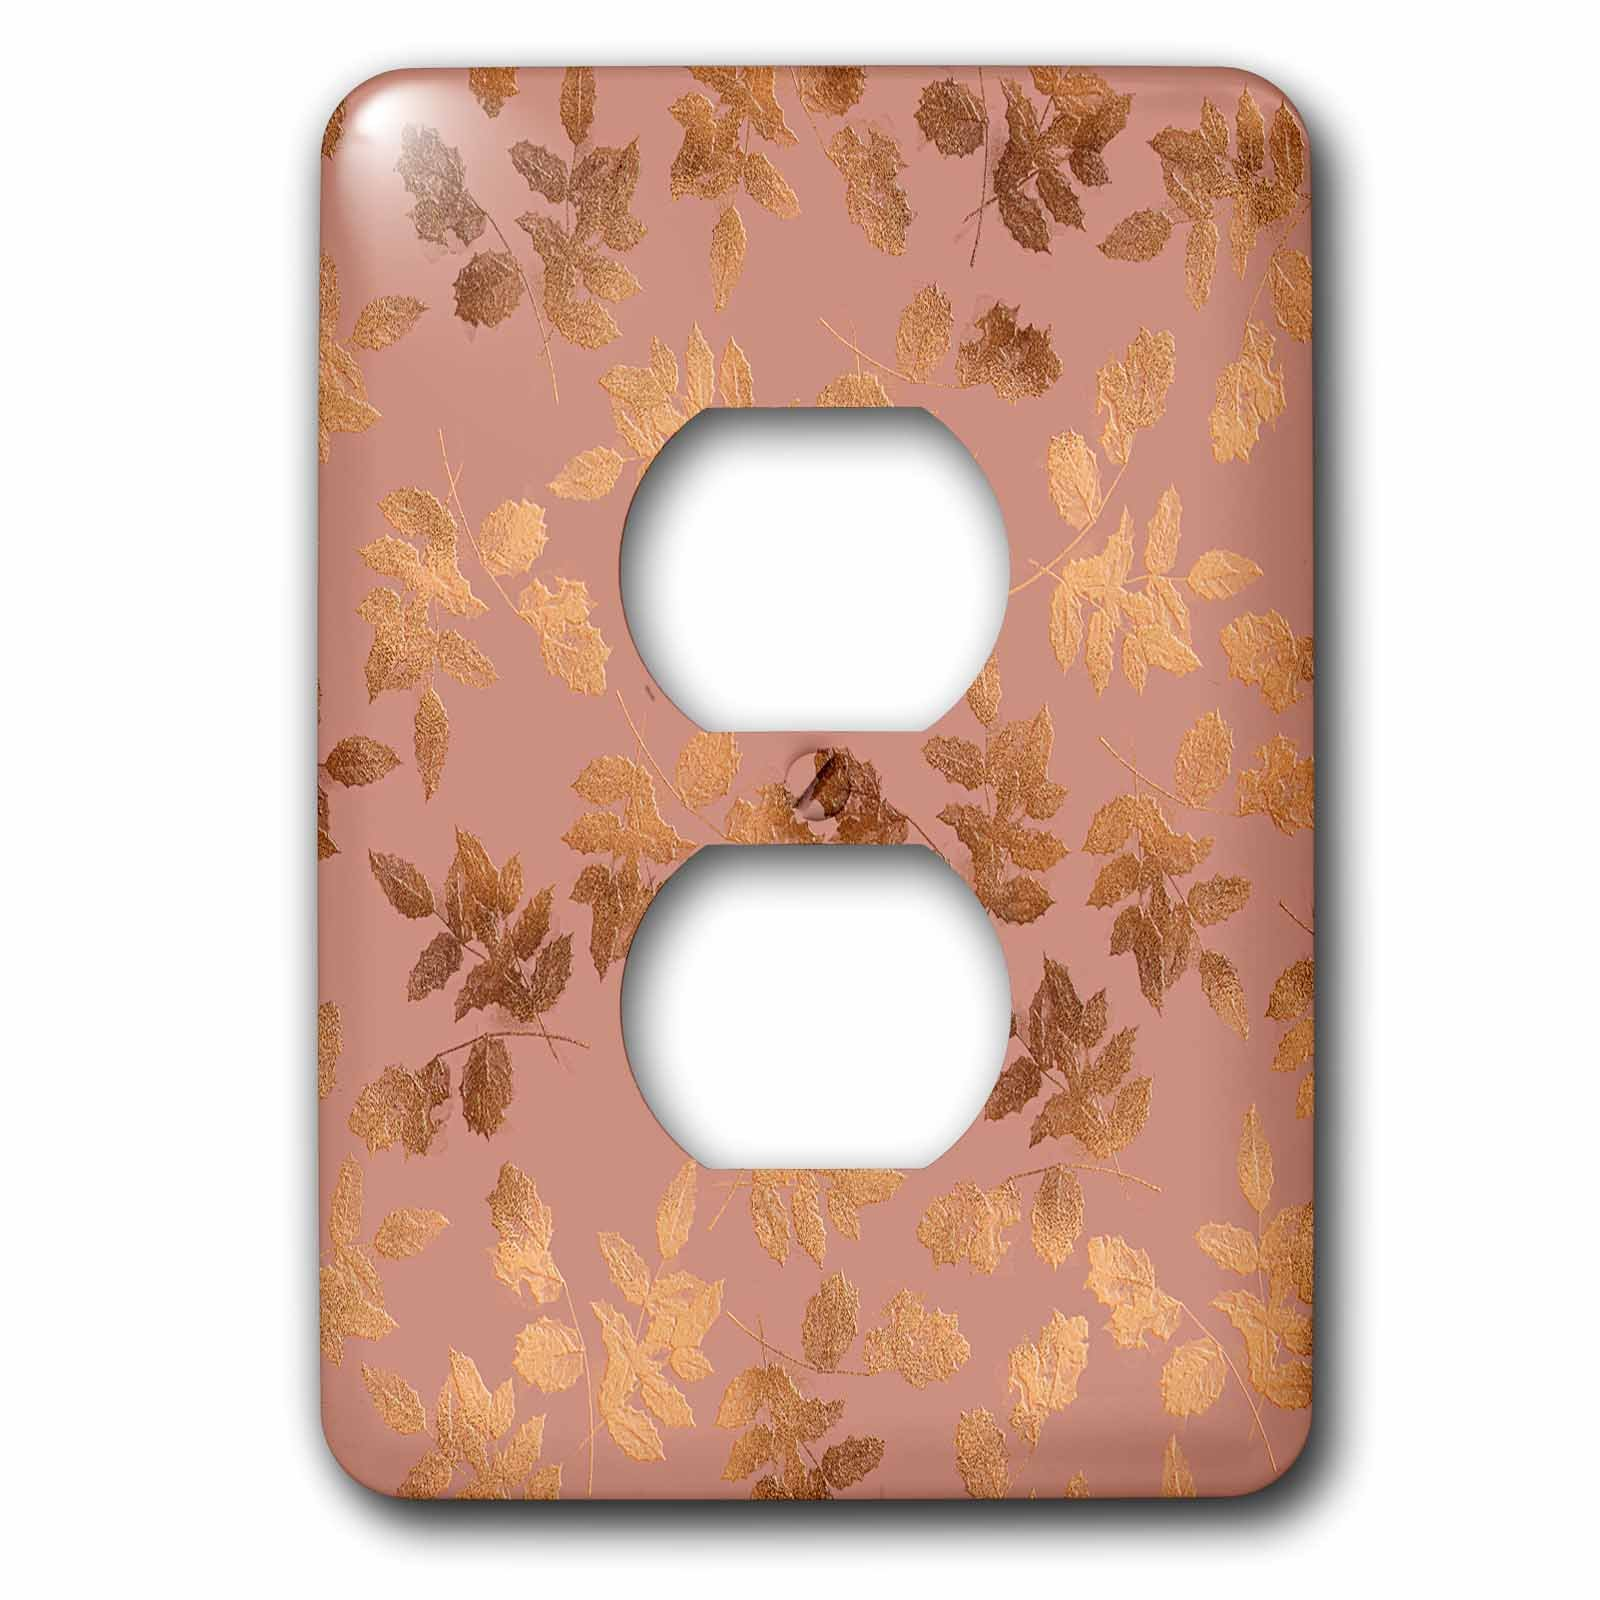 3dRose Uta Naumann Faux Glitter Pattern - Luxury Rose Gold Copper Damask Pattern - Light Switch Covers - 2 plug outlet cover (lsp_272884_6)